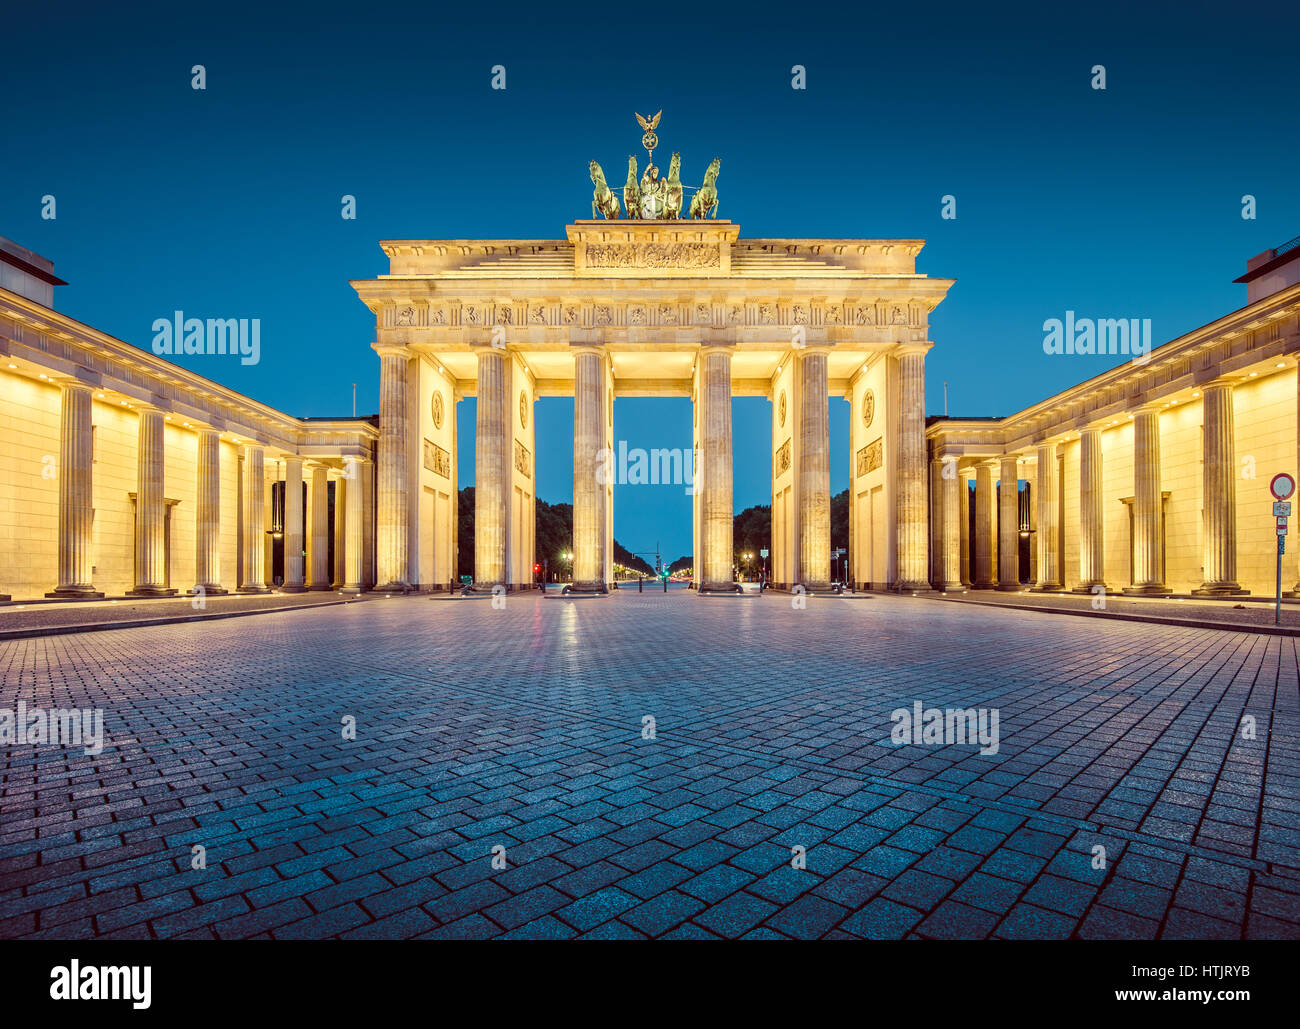 Panoramic view of famous Brandenburger Tor (Brandenburg Gate), one of the best-known landmarks and national symbols - Stock Image